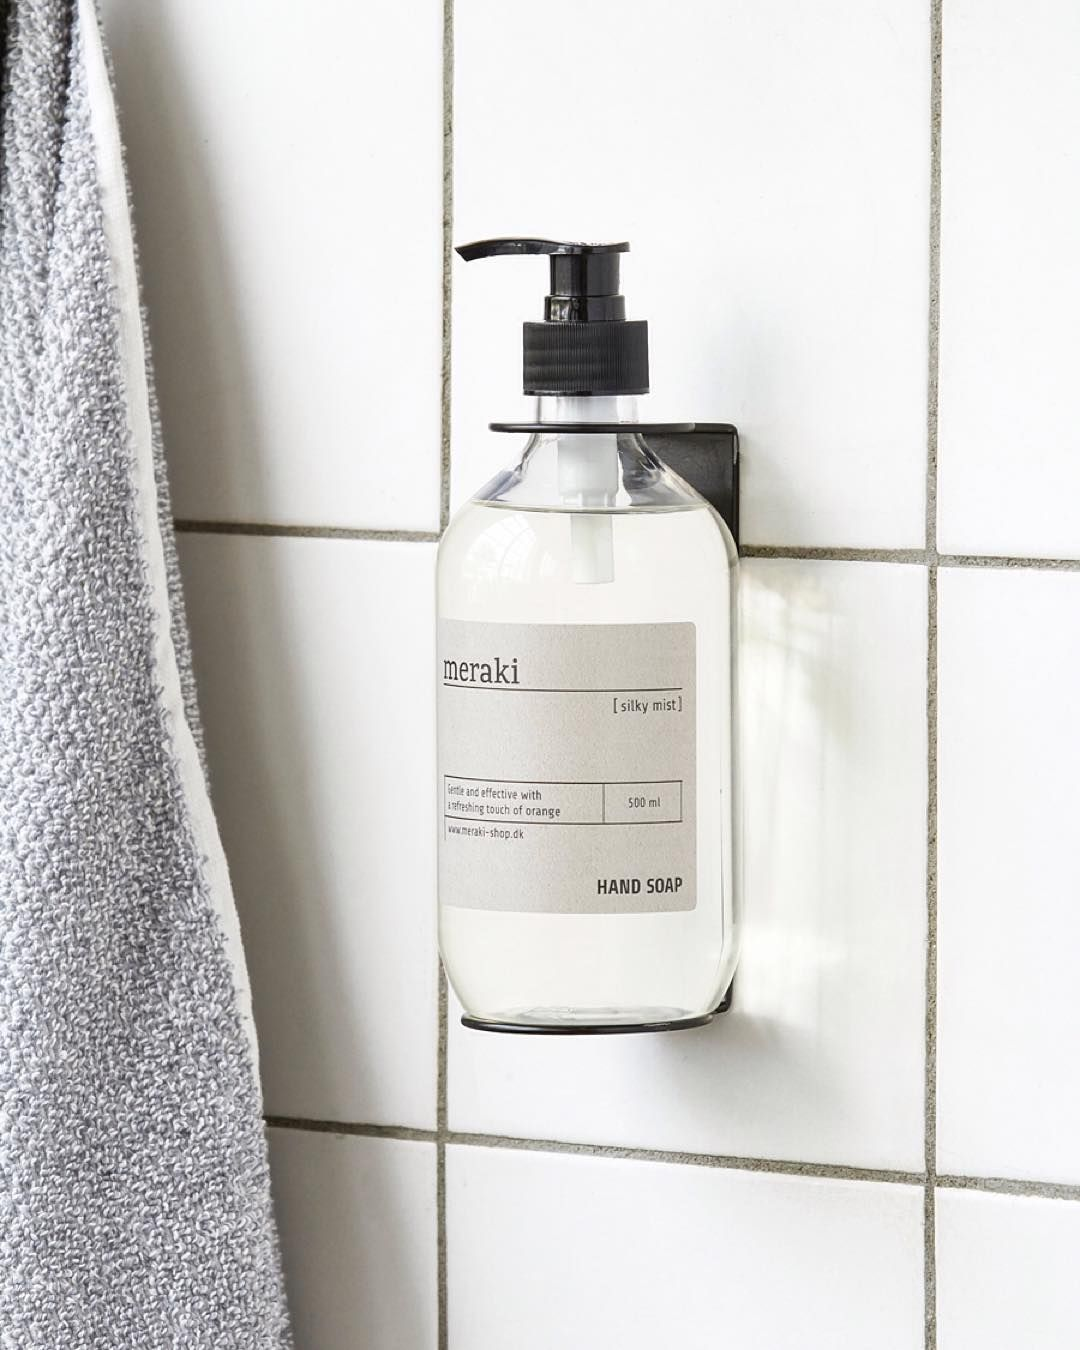 Hand Soap Bottle Holder Via Merakishopdk On Instagram Http Ift Tt 1p37cq4 For